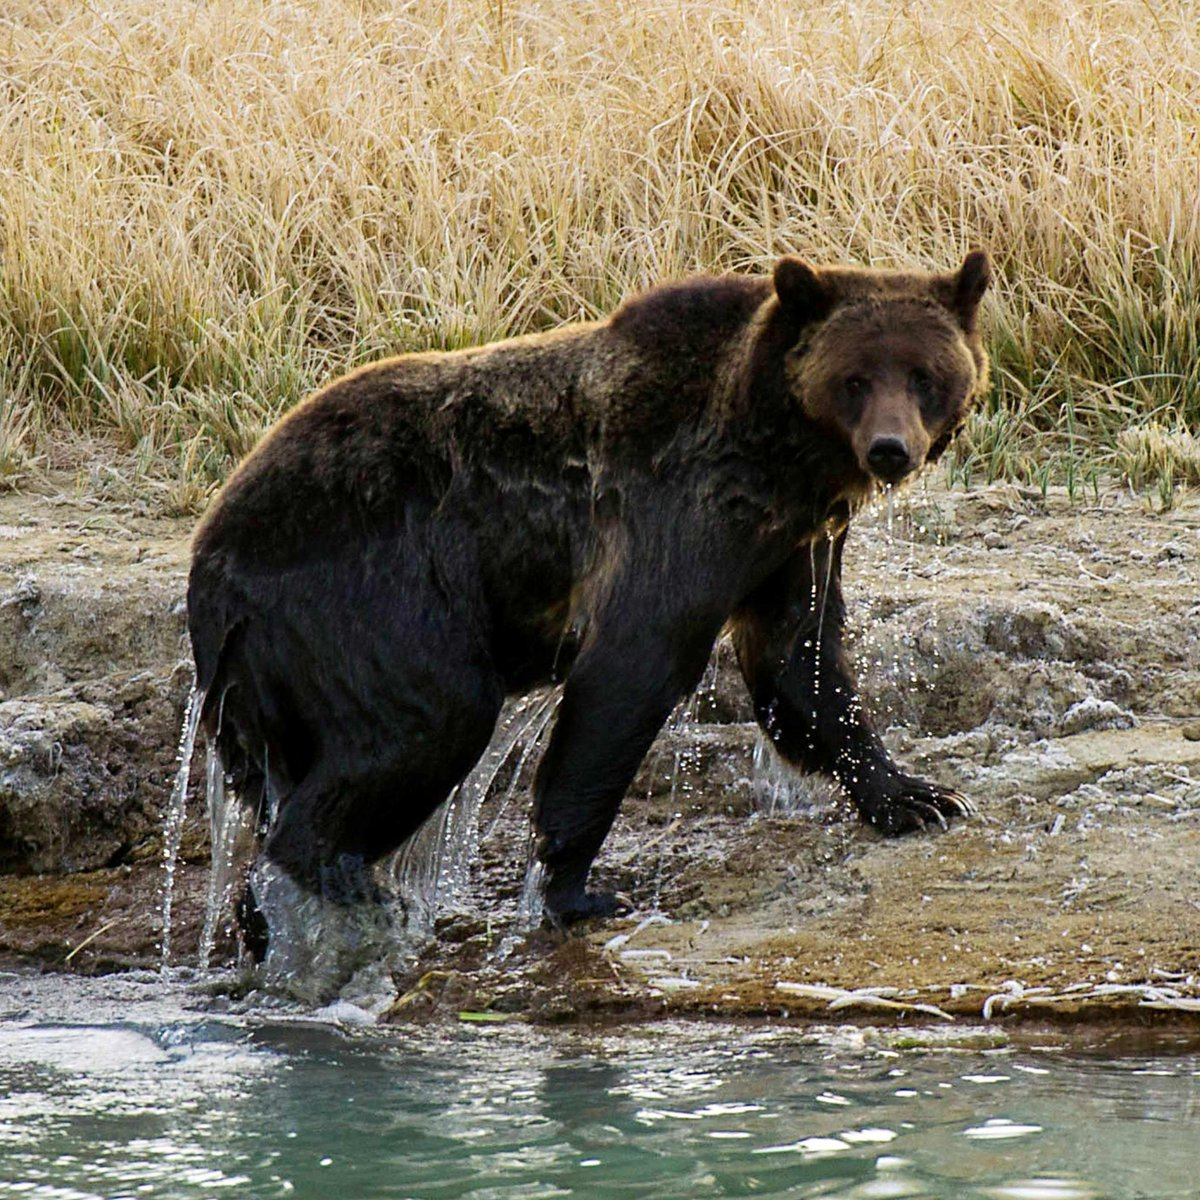 Environmental groups are suing to save the Endangered Species Act, after the Trump admin. announced new rules that would limit animal protections and ignore the effects of climate change.  It is credited with saving animals like the grizzly bear and bald eagle from extinction. <br>http://pic.twitter.com/IzRZOjUH5s